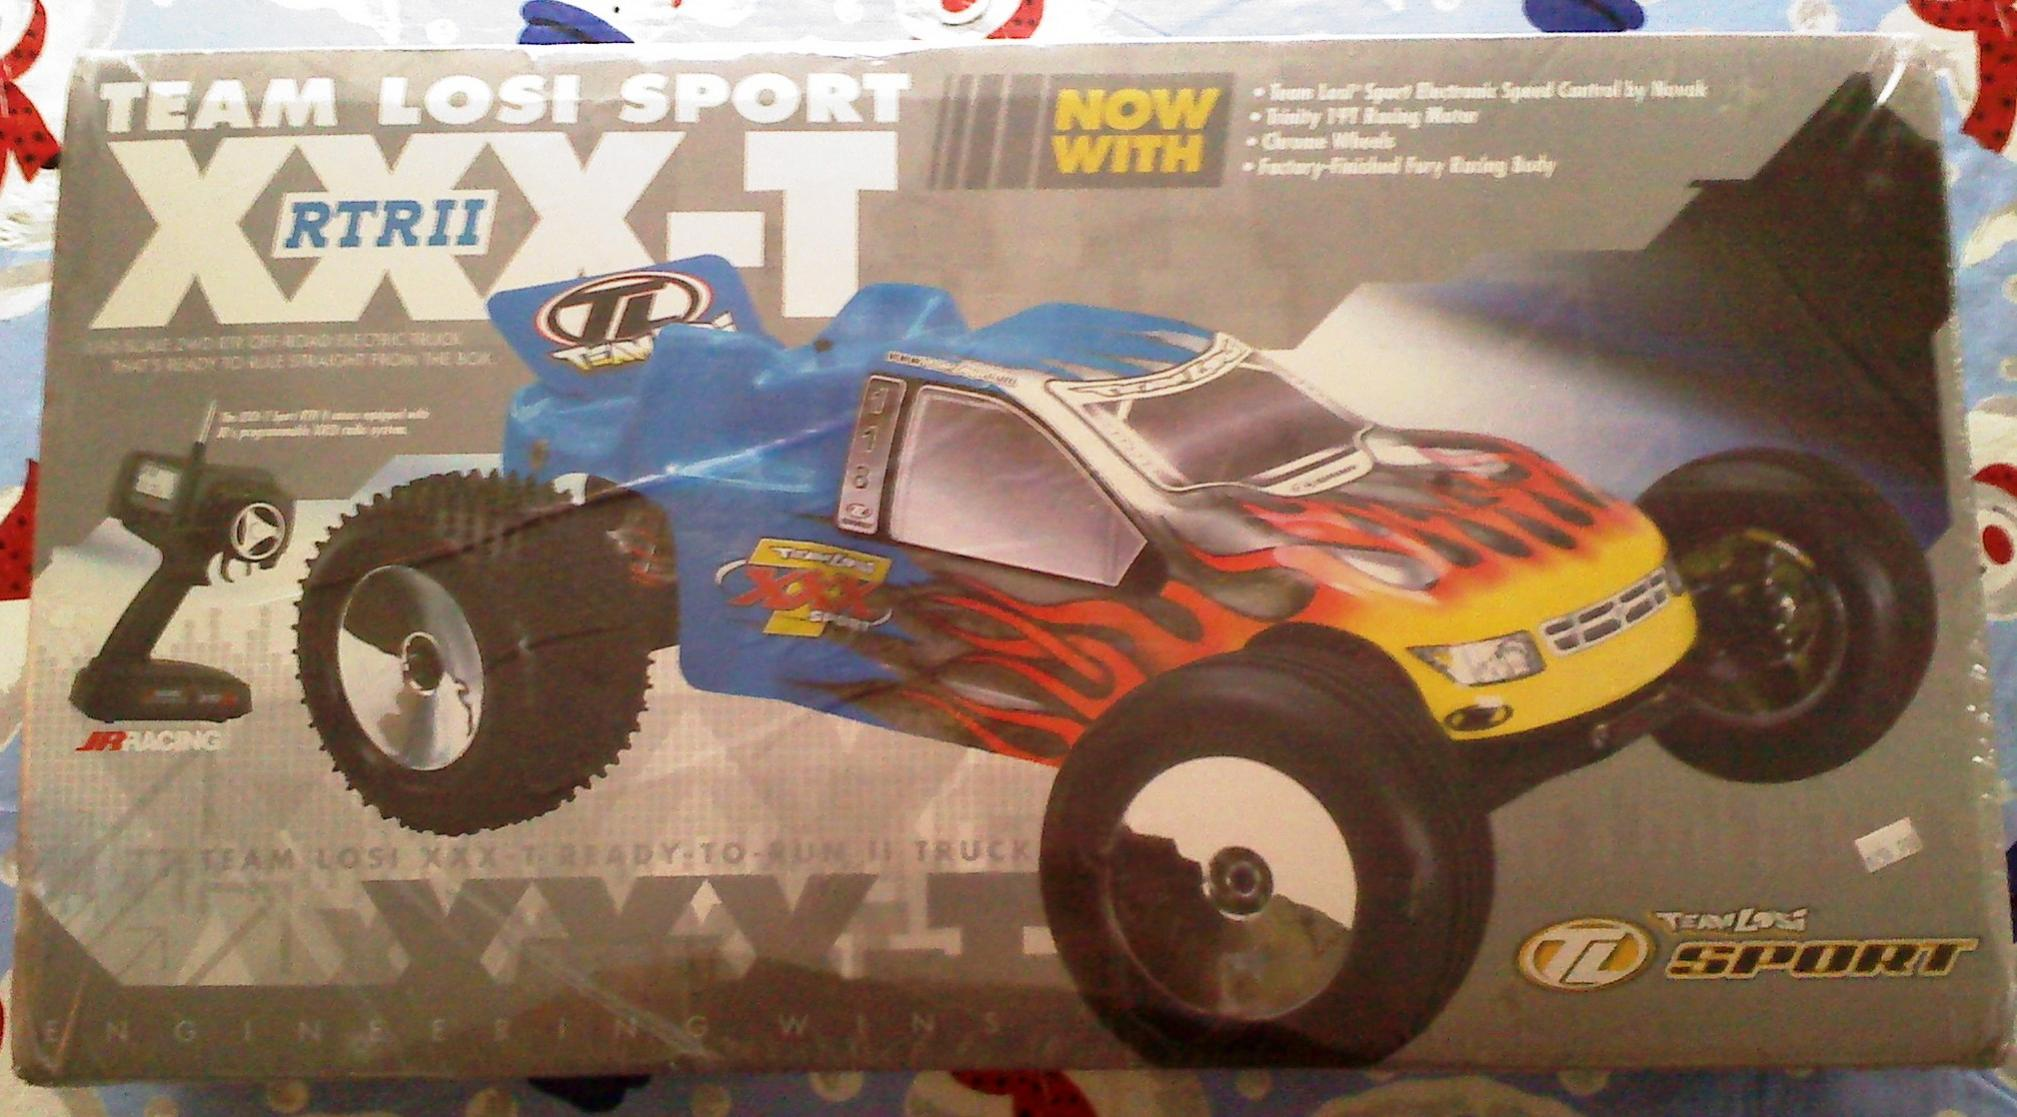 You Xxx t sport rtr ii brushless the question